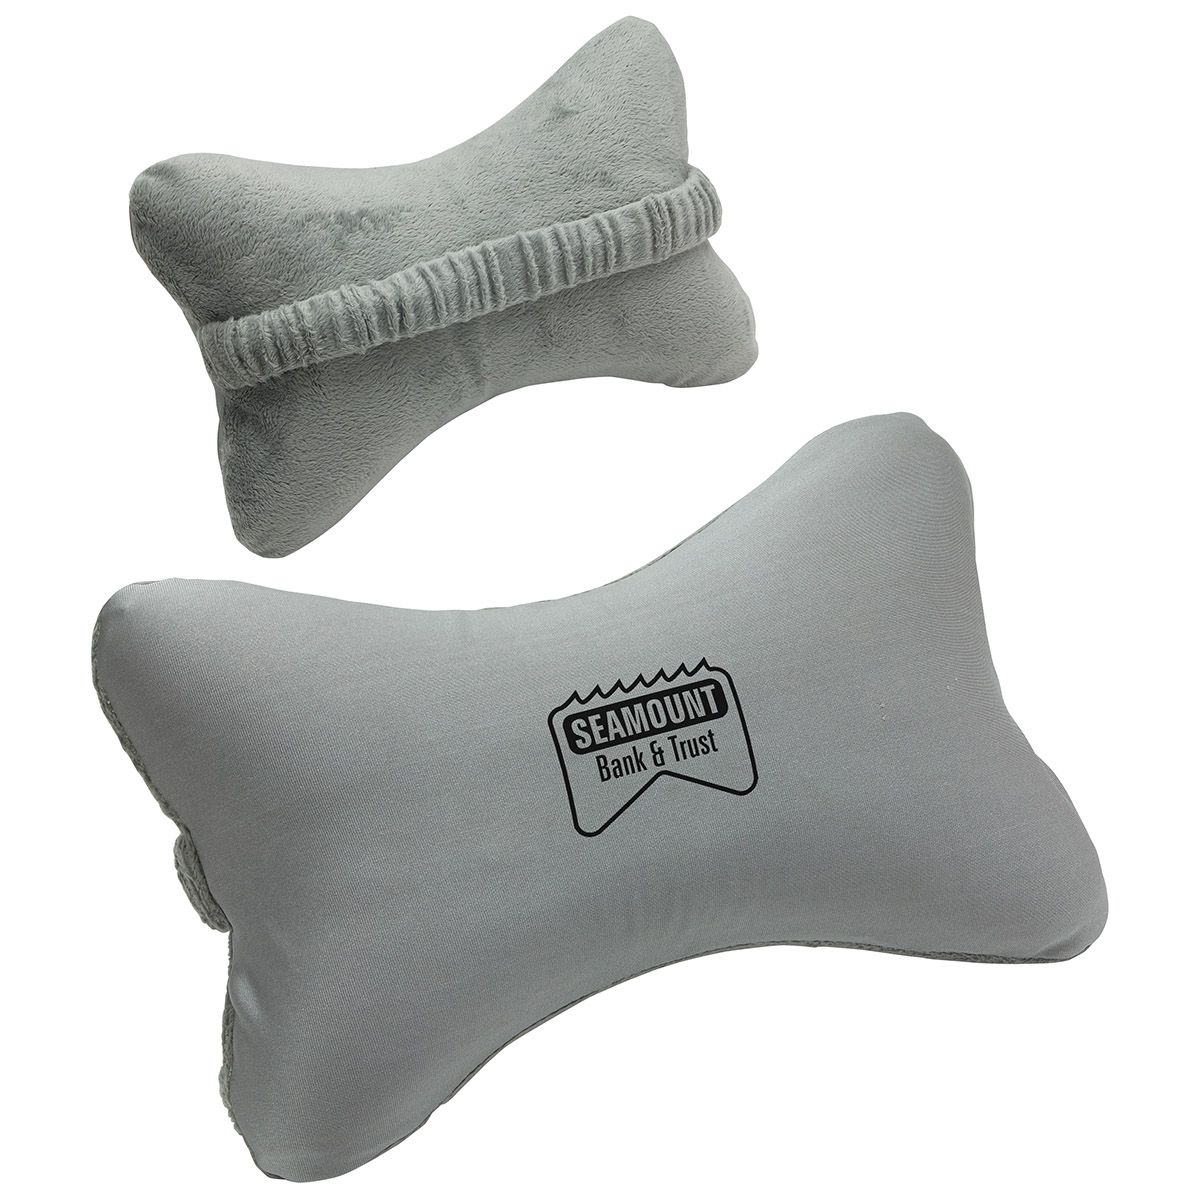 Car Neck Rest Pillow, WTV-CN15 - 1 Colour Imprint